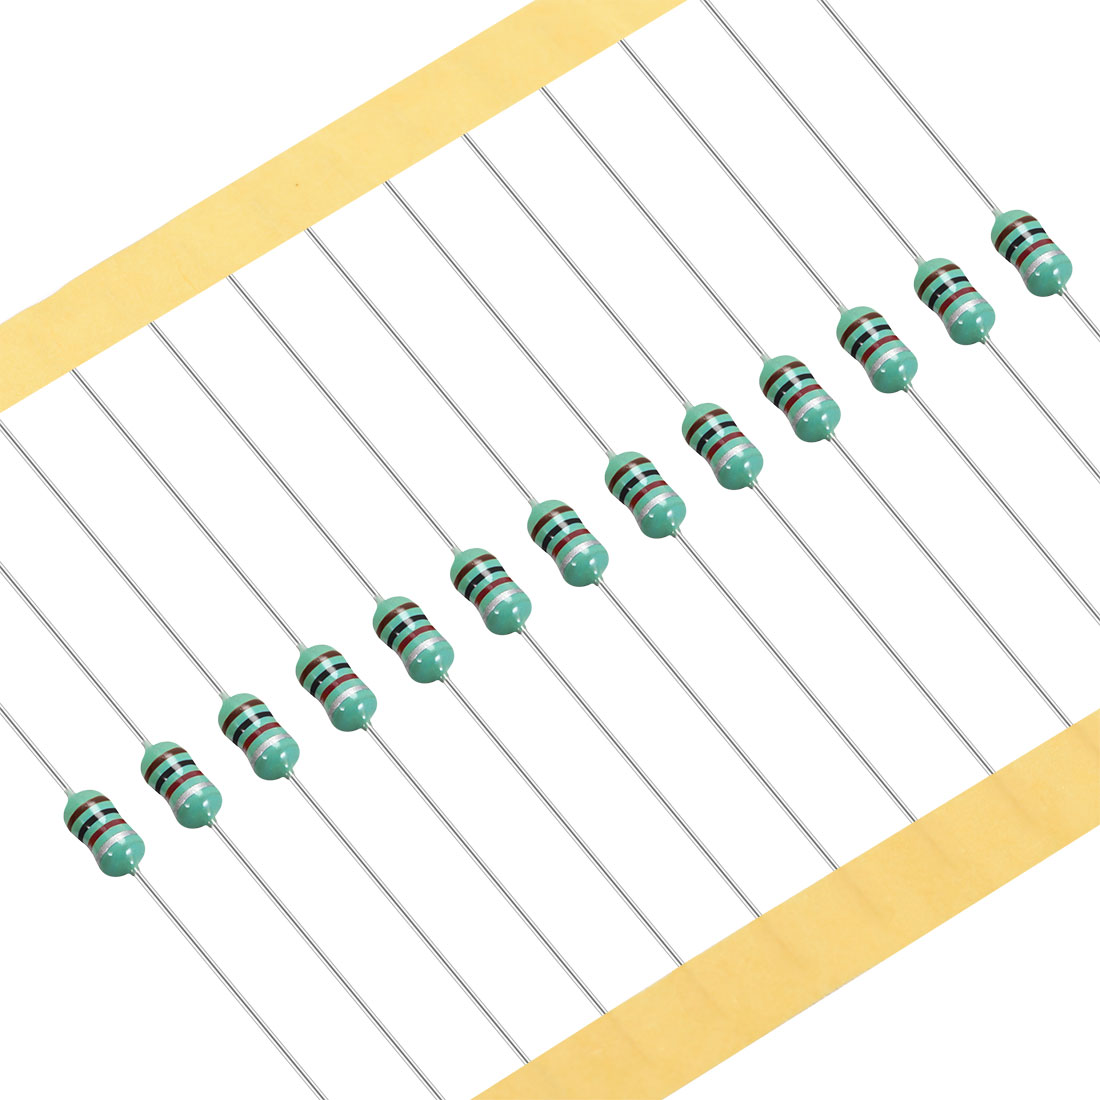 50Pcs 0307 Color Ring Inductor 1000uH 0.5W Axial RF Choke Coil Inductor